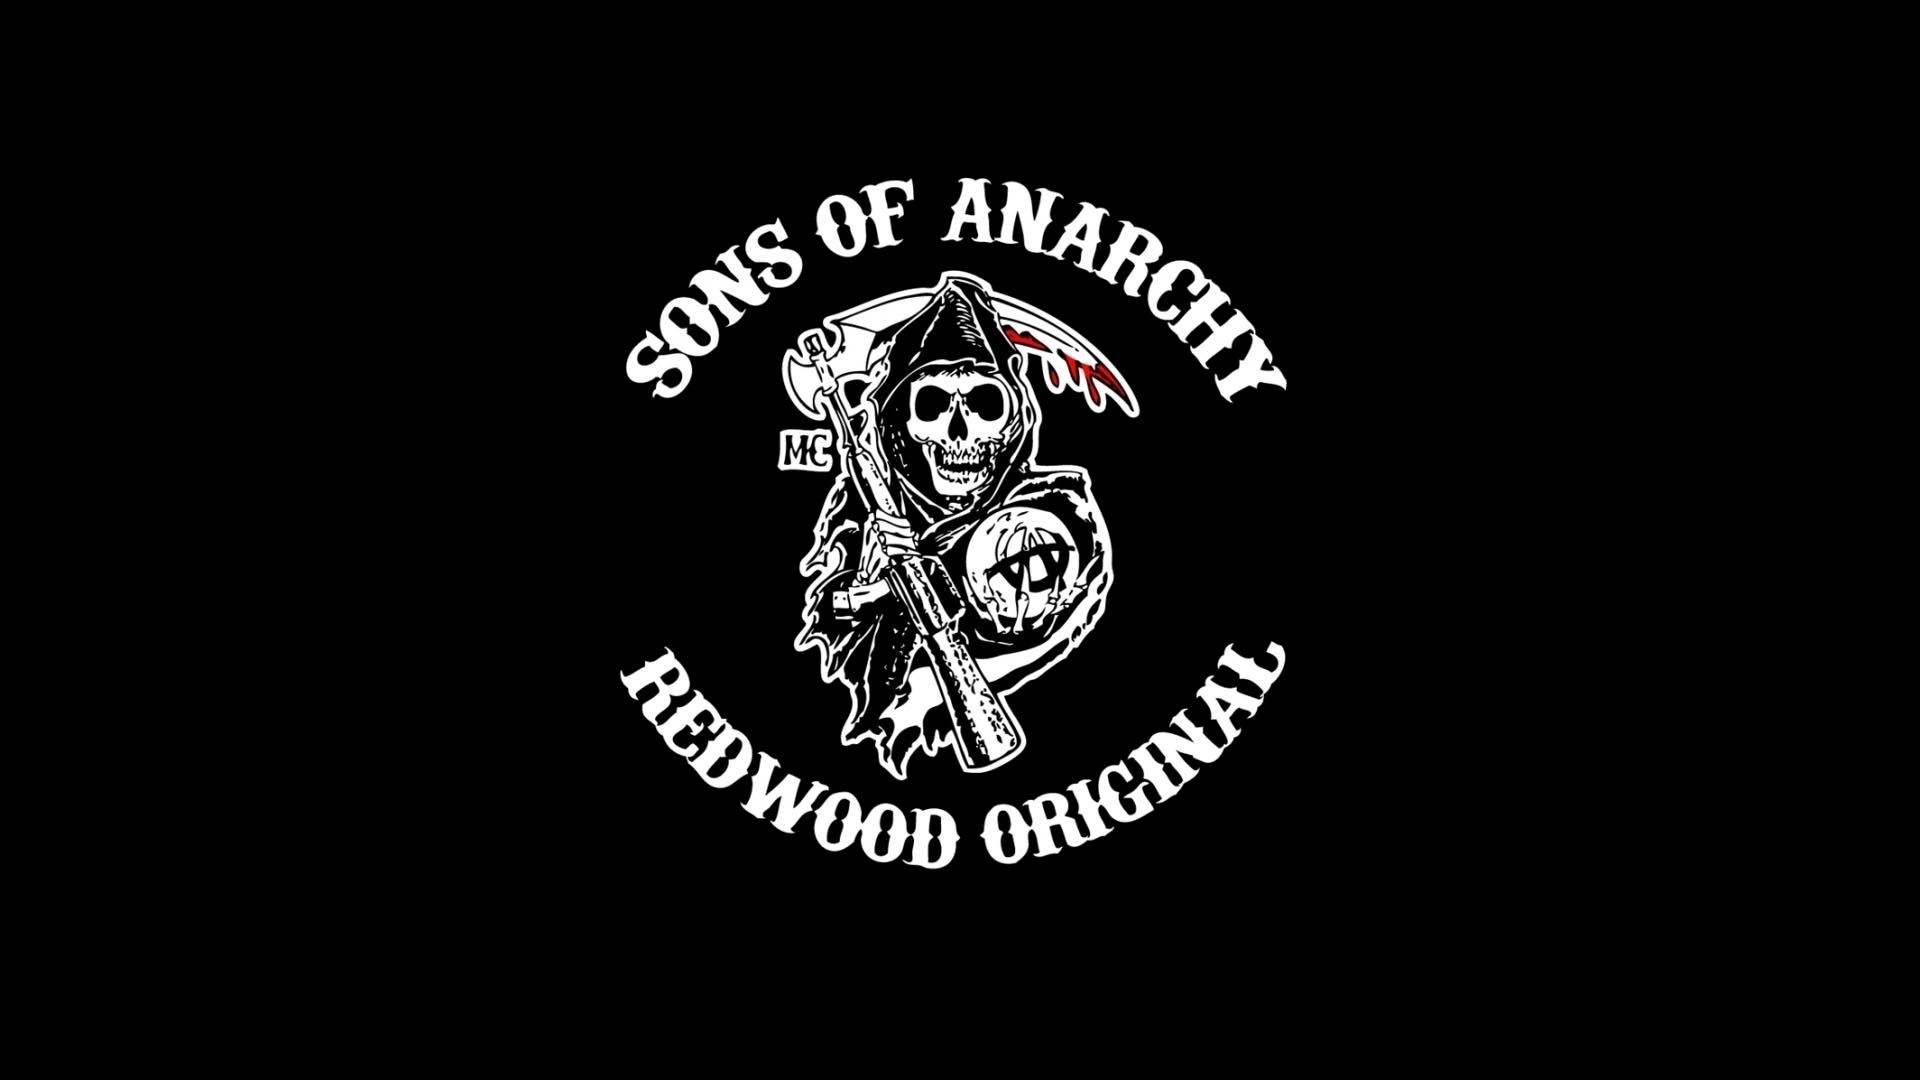 10 Top Sons Of Anarchy Wallpaper Hd FULL HD 1080p For PC Background